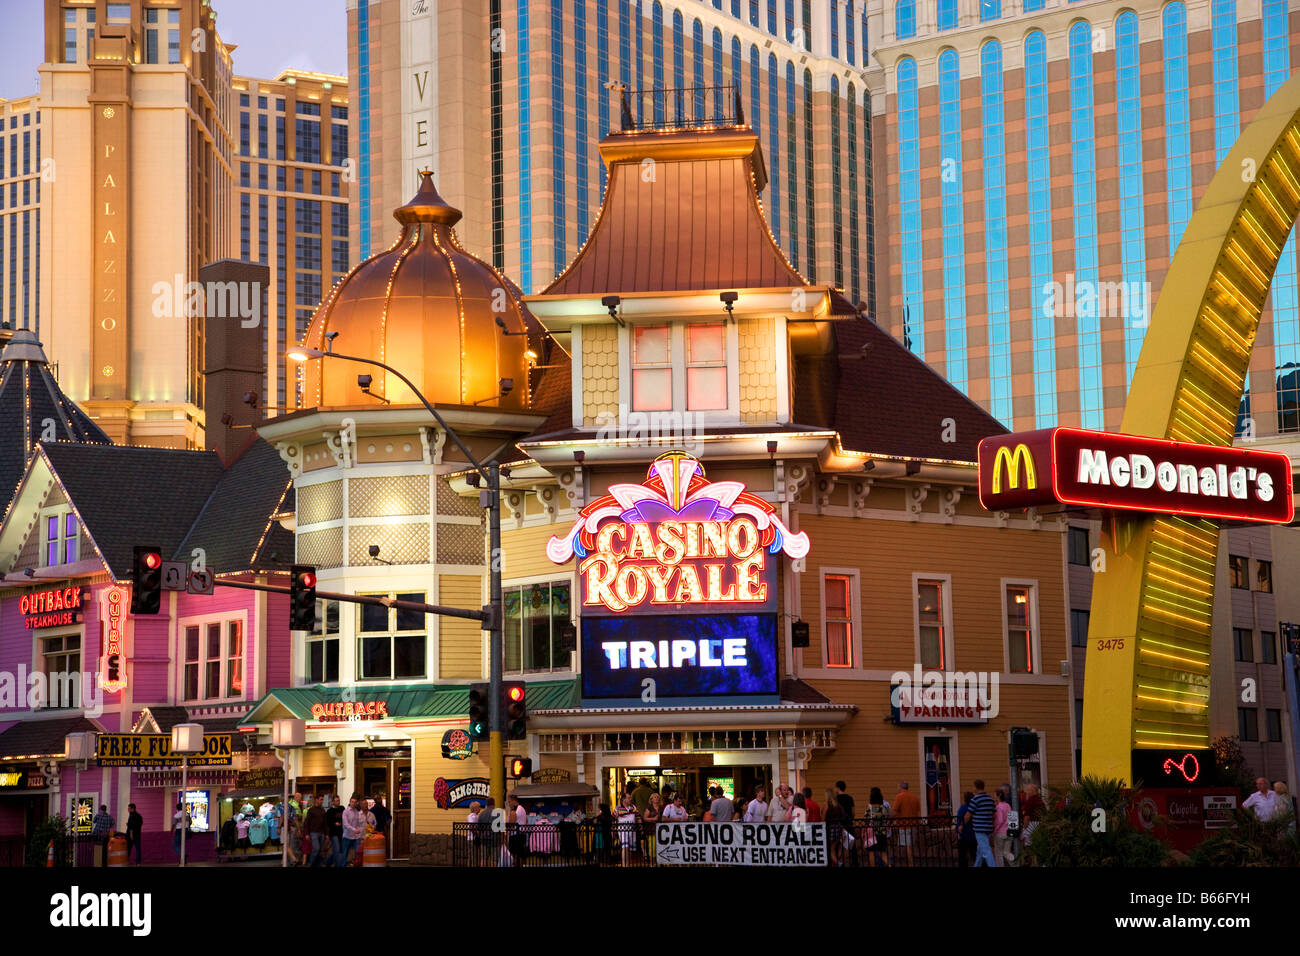 Royale casino and hotel gambling commission prize draws